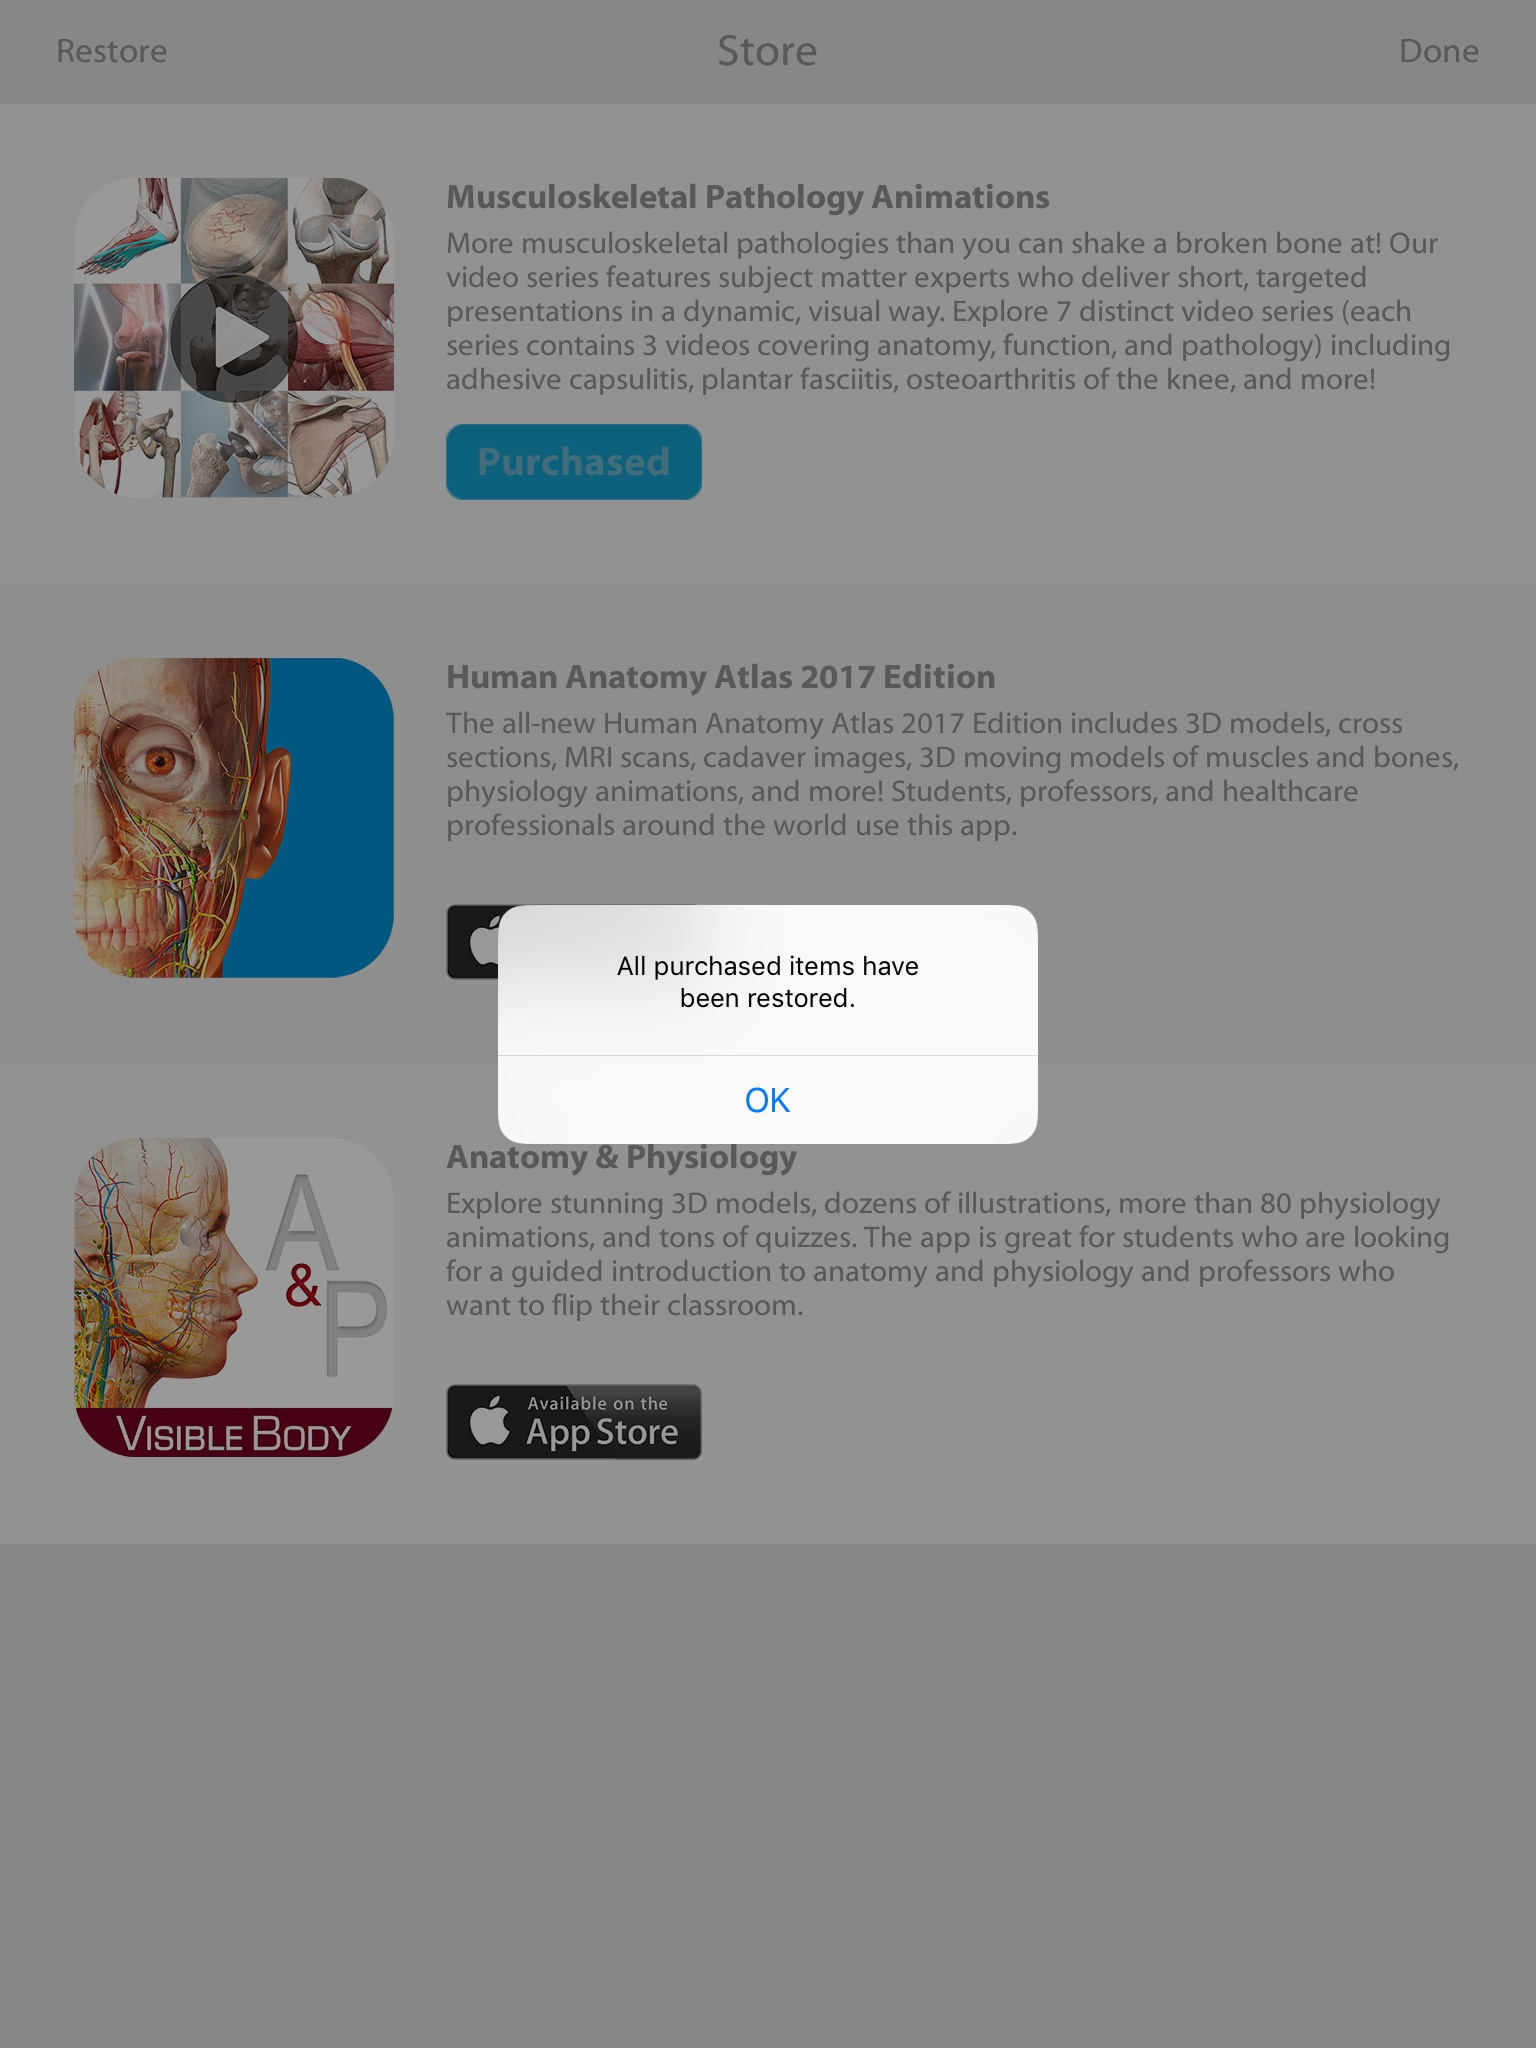 Making or restoring an in-app purchase – Visible Body